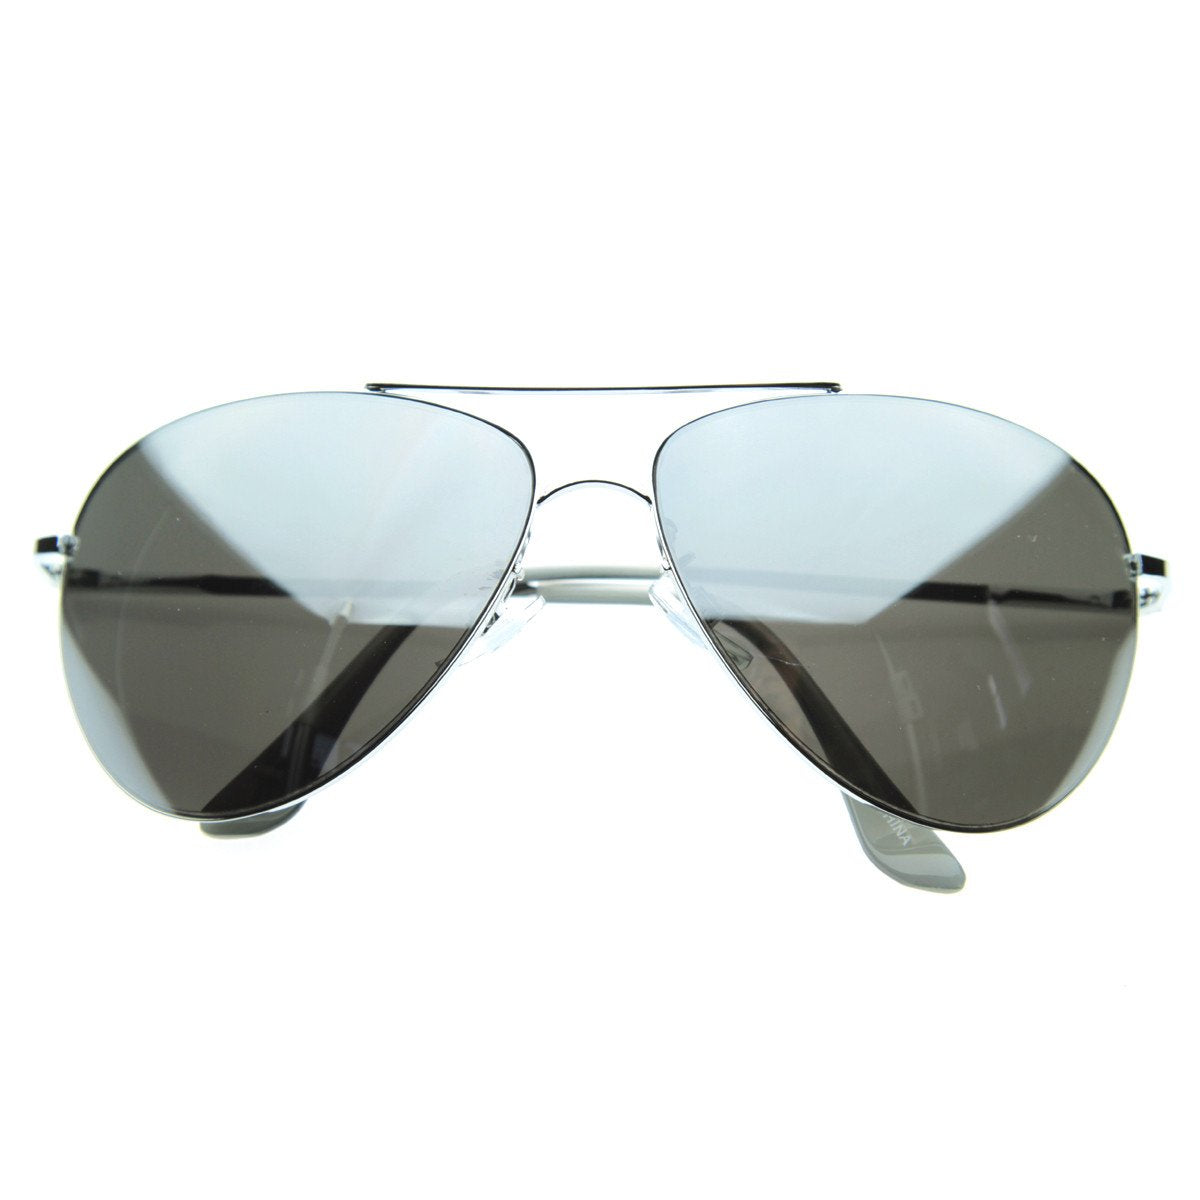 2d7561bcc4e9 Oversize Large Full Metal Aviator Sunglasses 60mm 9682  9.99 USD · Full  Mirrored Lens Class Curved Metal Aviator Sunglasses 1535